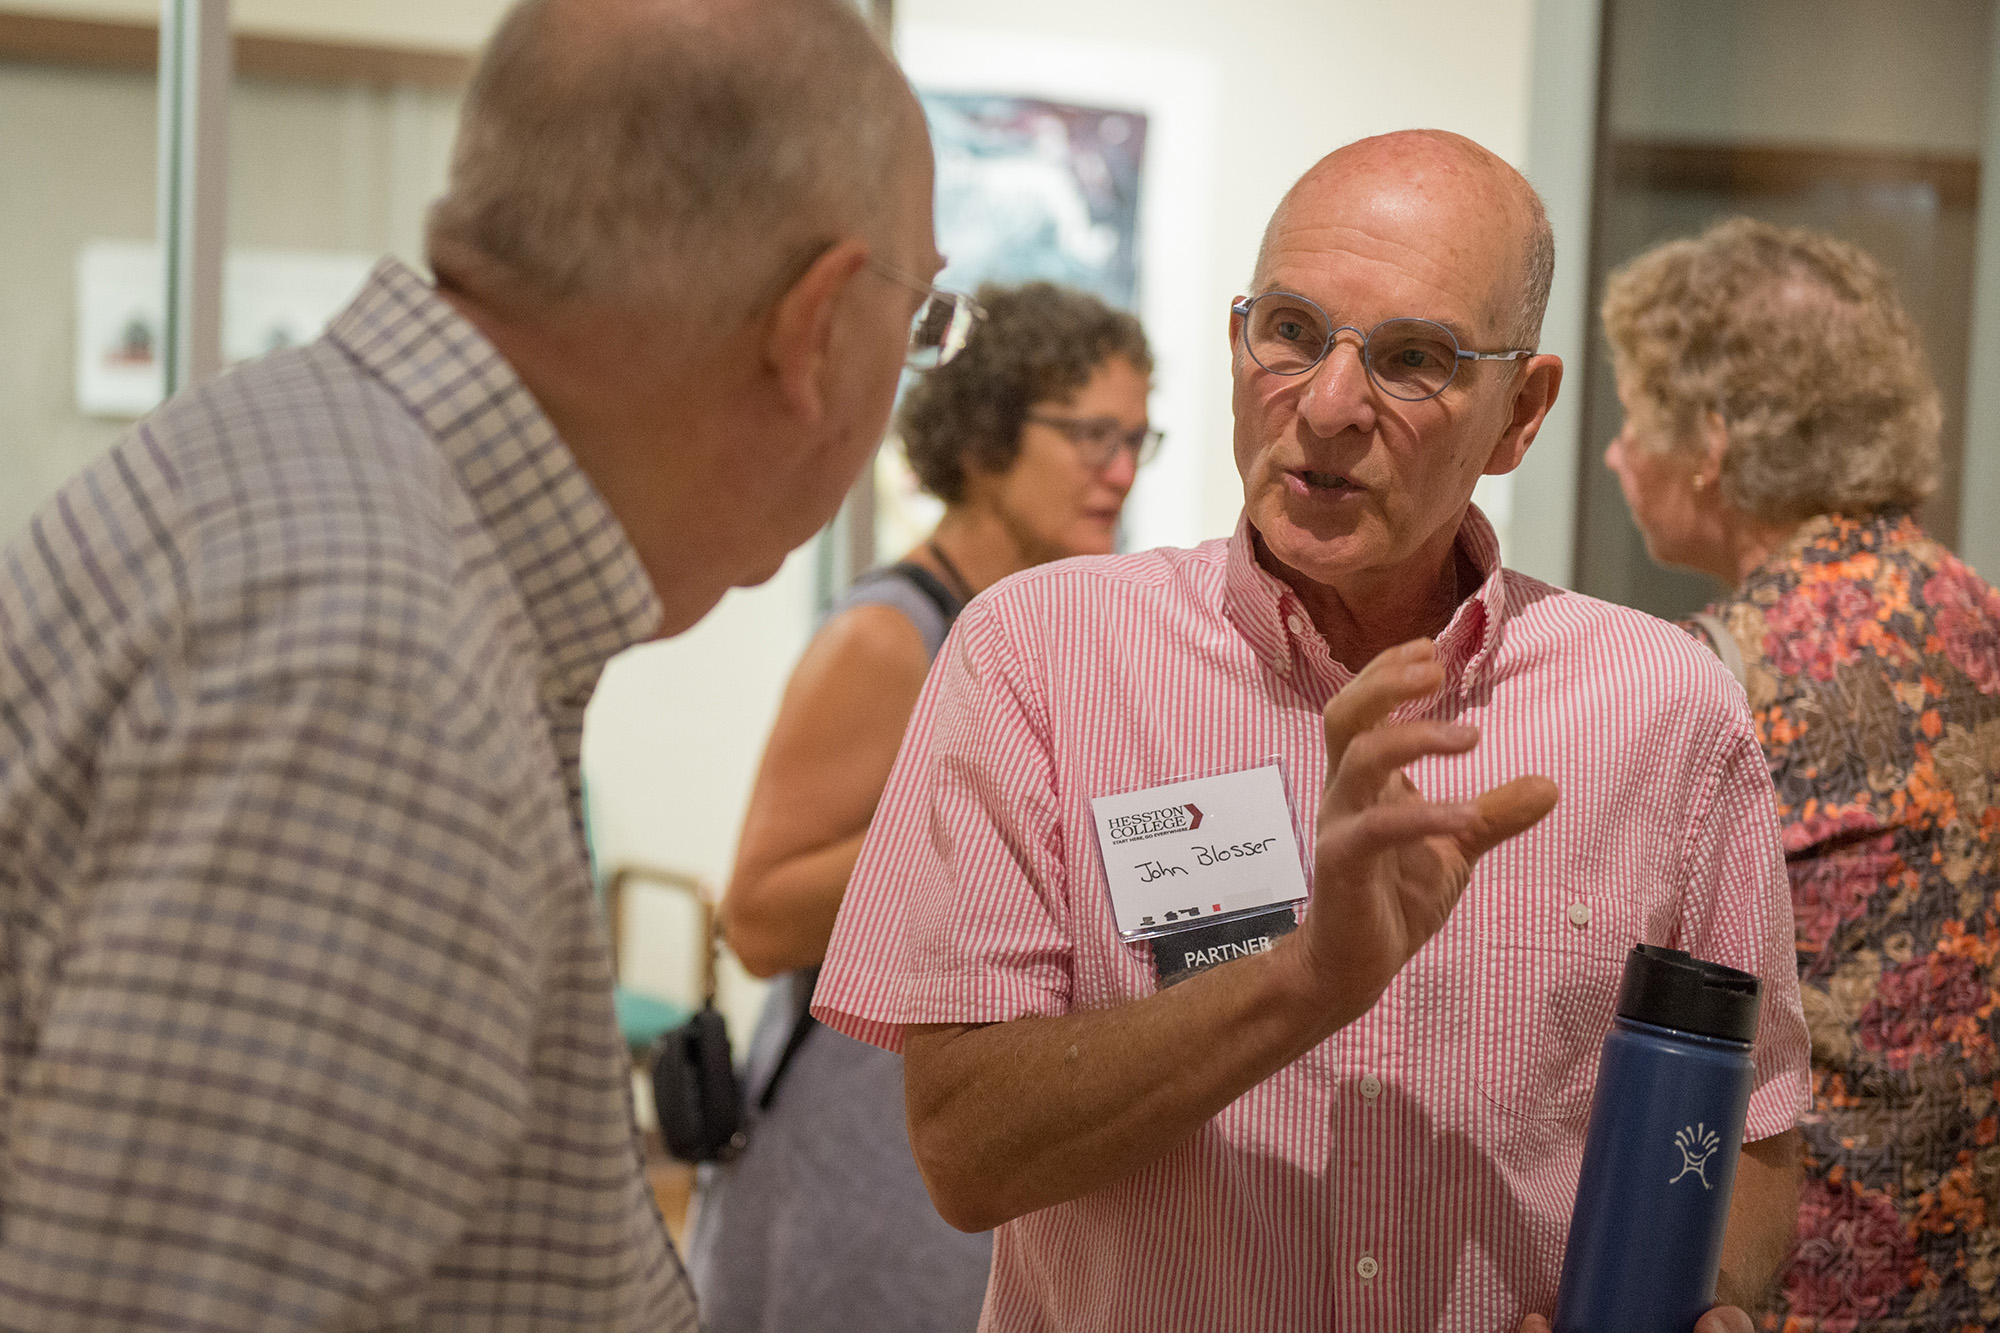 Former art prof John Blosser visits with former physics prof Nelson Kilmer at an artist's reception for Blosser's exhibit.